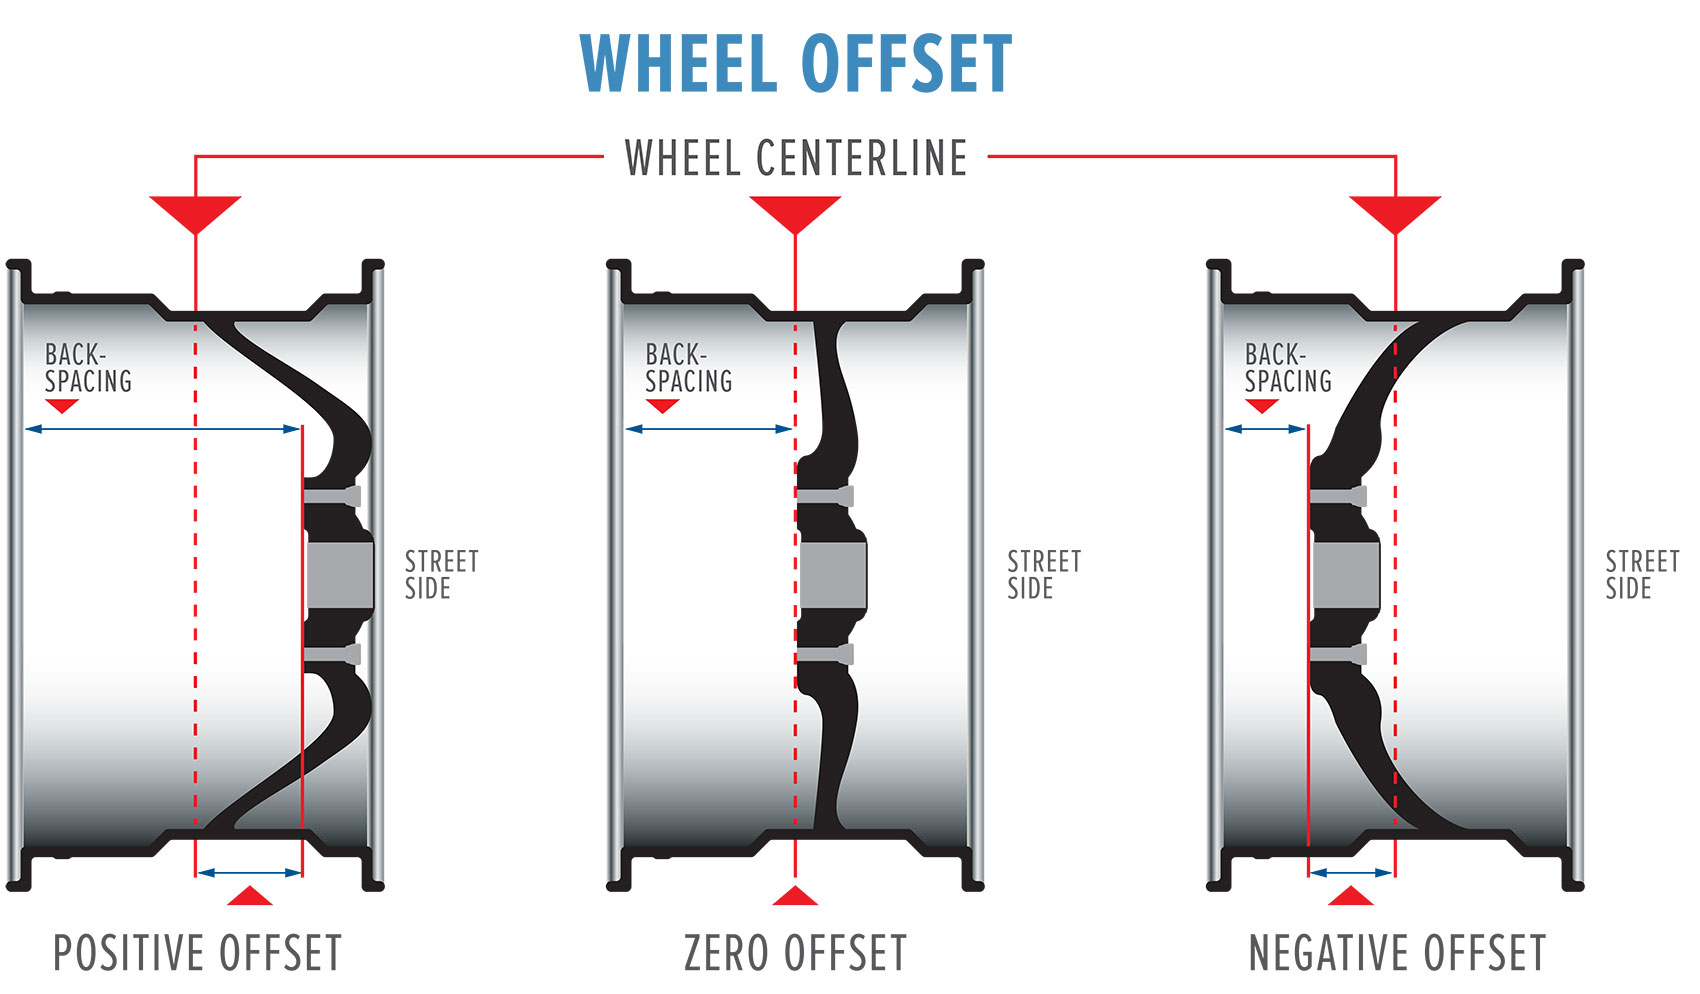 Tire Size Meaning >> What is Wheel Offset? - Les Schwab